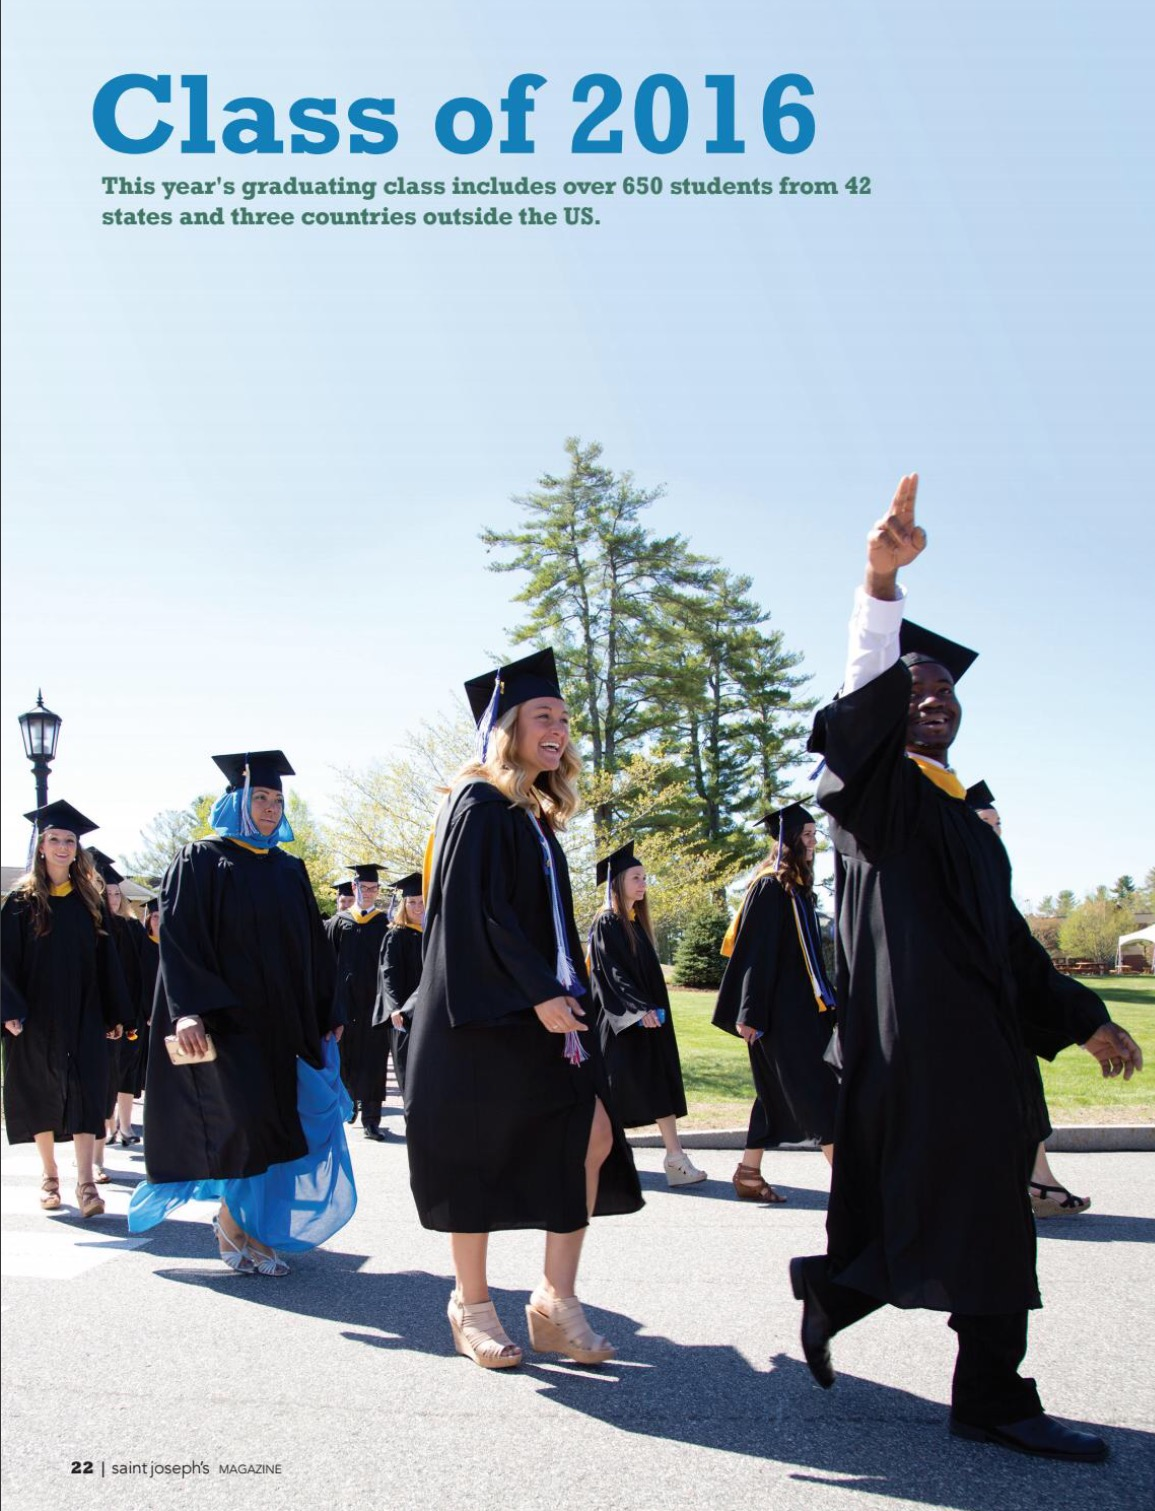 Lisandra featured on the cover of Saint Jospeh's College magazine as she celebrates her bachelor's degree in 2016